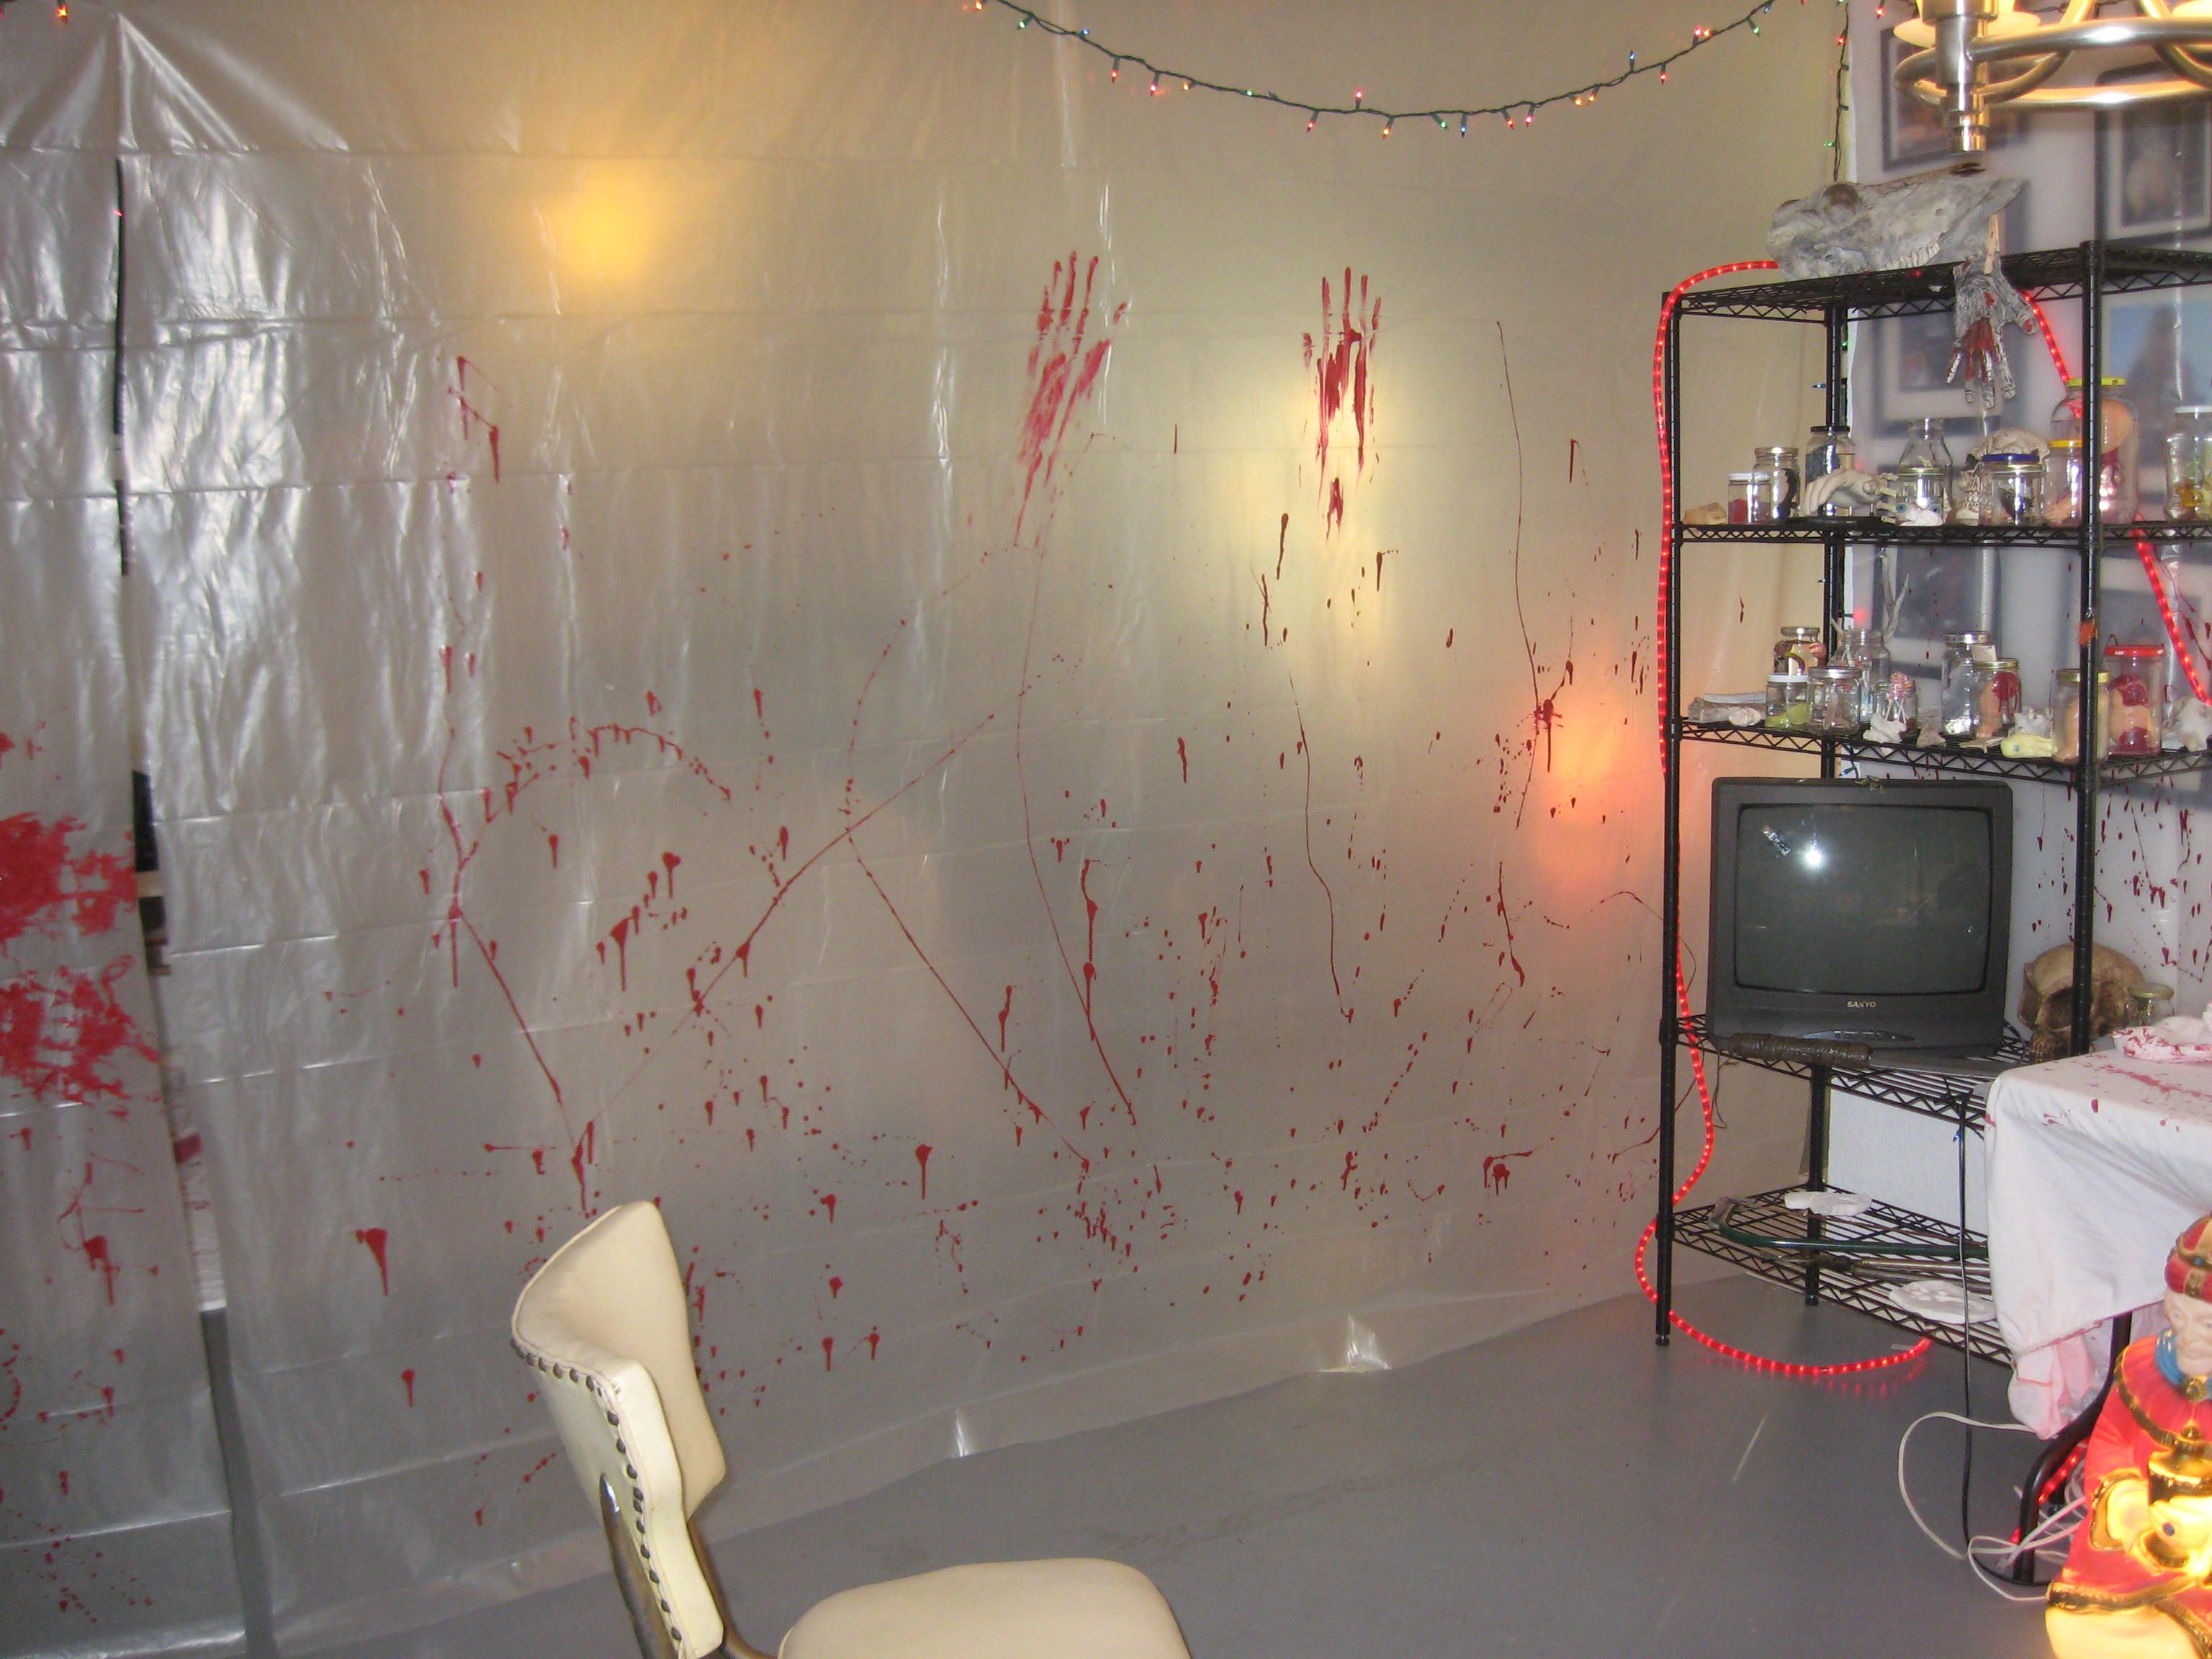 Decorating Ideas > Hanging Creepy Blood Stained Plastic Sheeting Would Give  ~ 074650_Halloween Asylum Door Prop